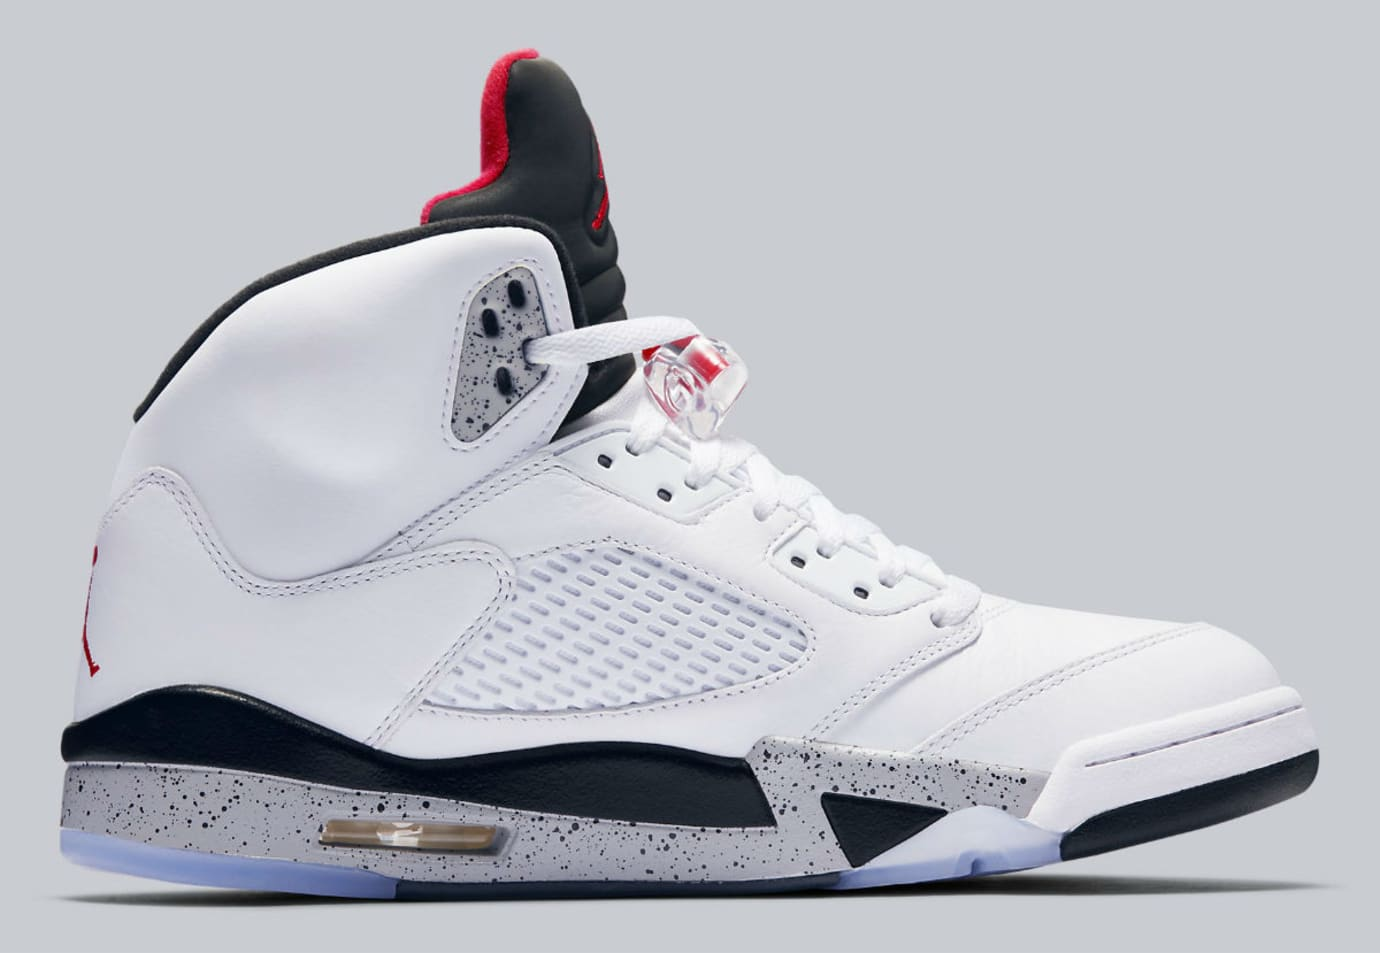 Air Jordan 5 White Cement Release Date Medial 136027-104